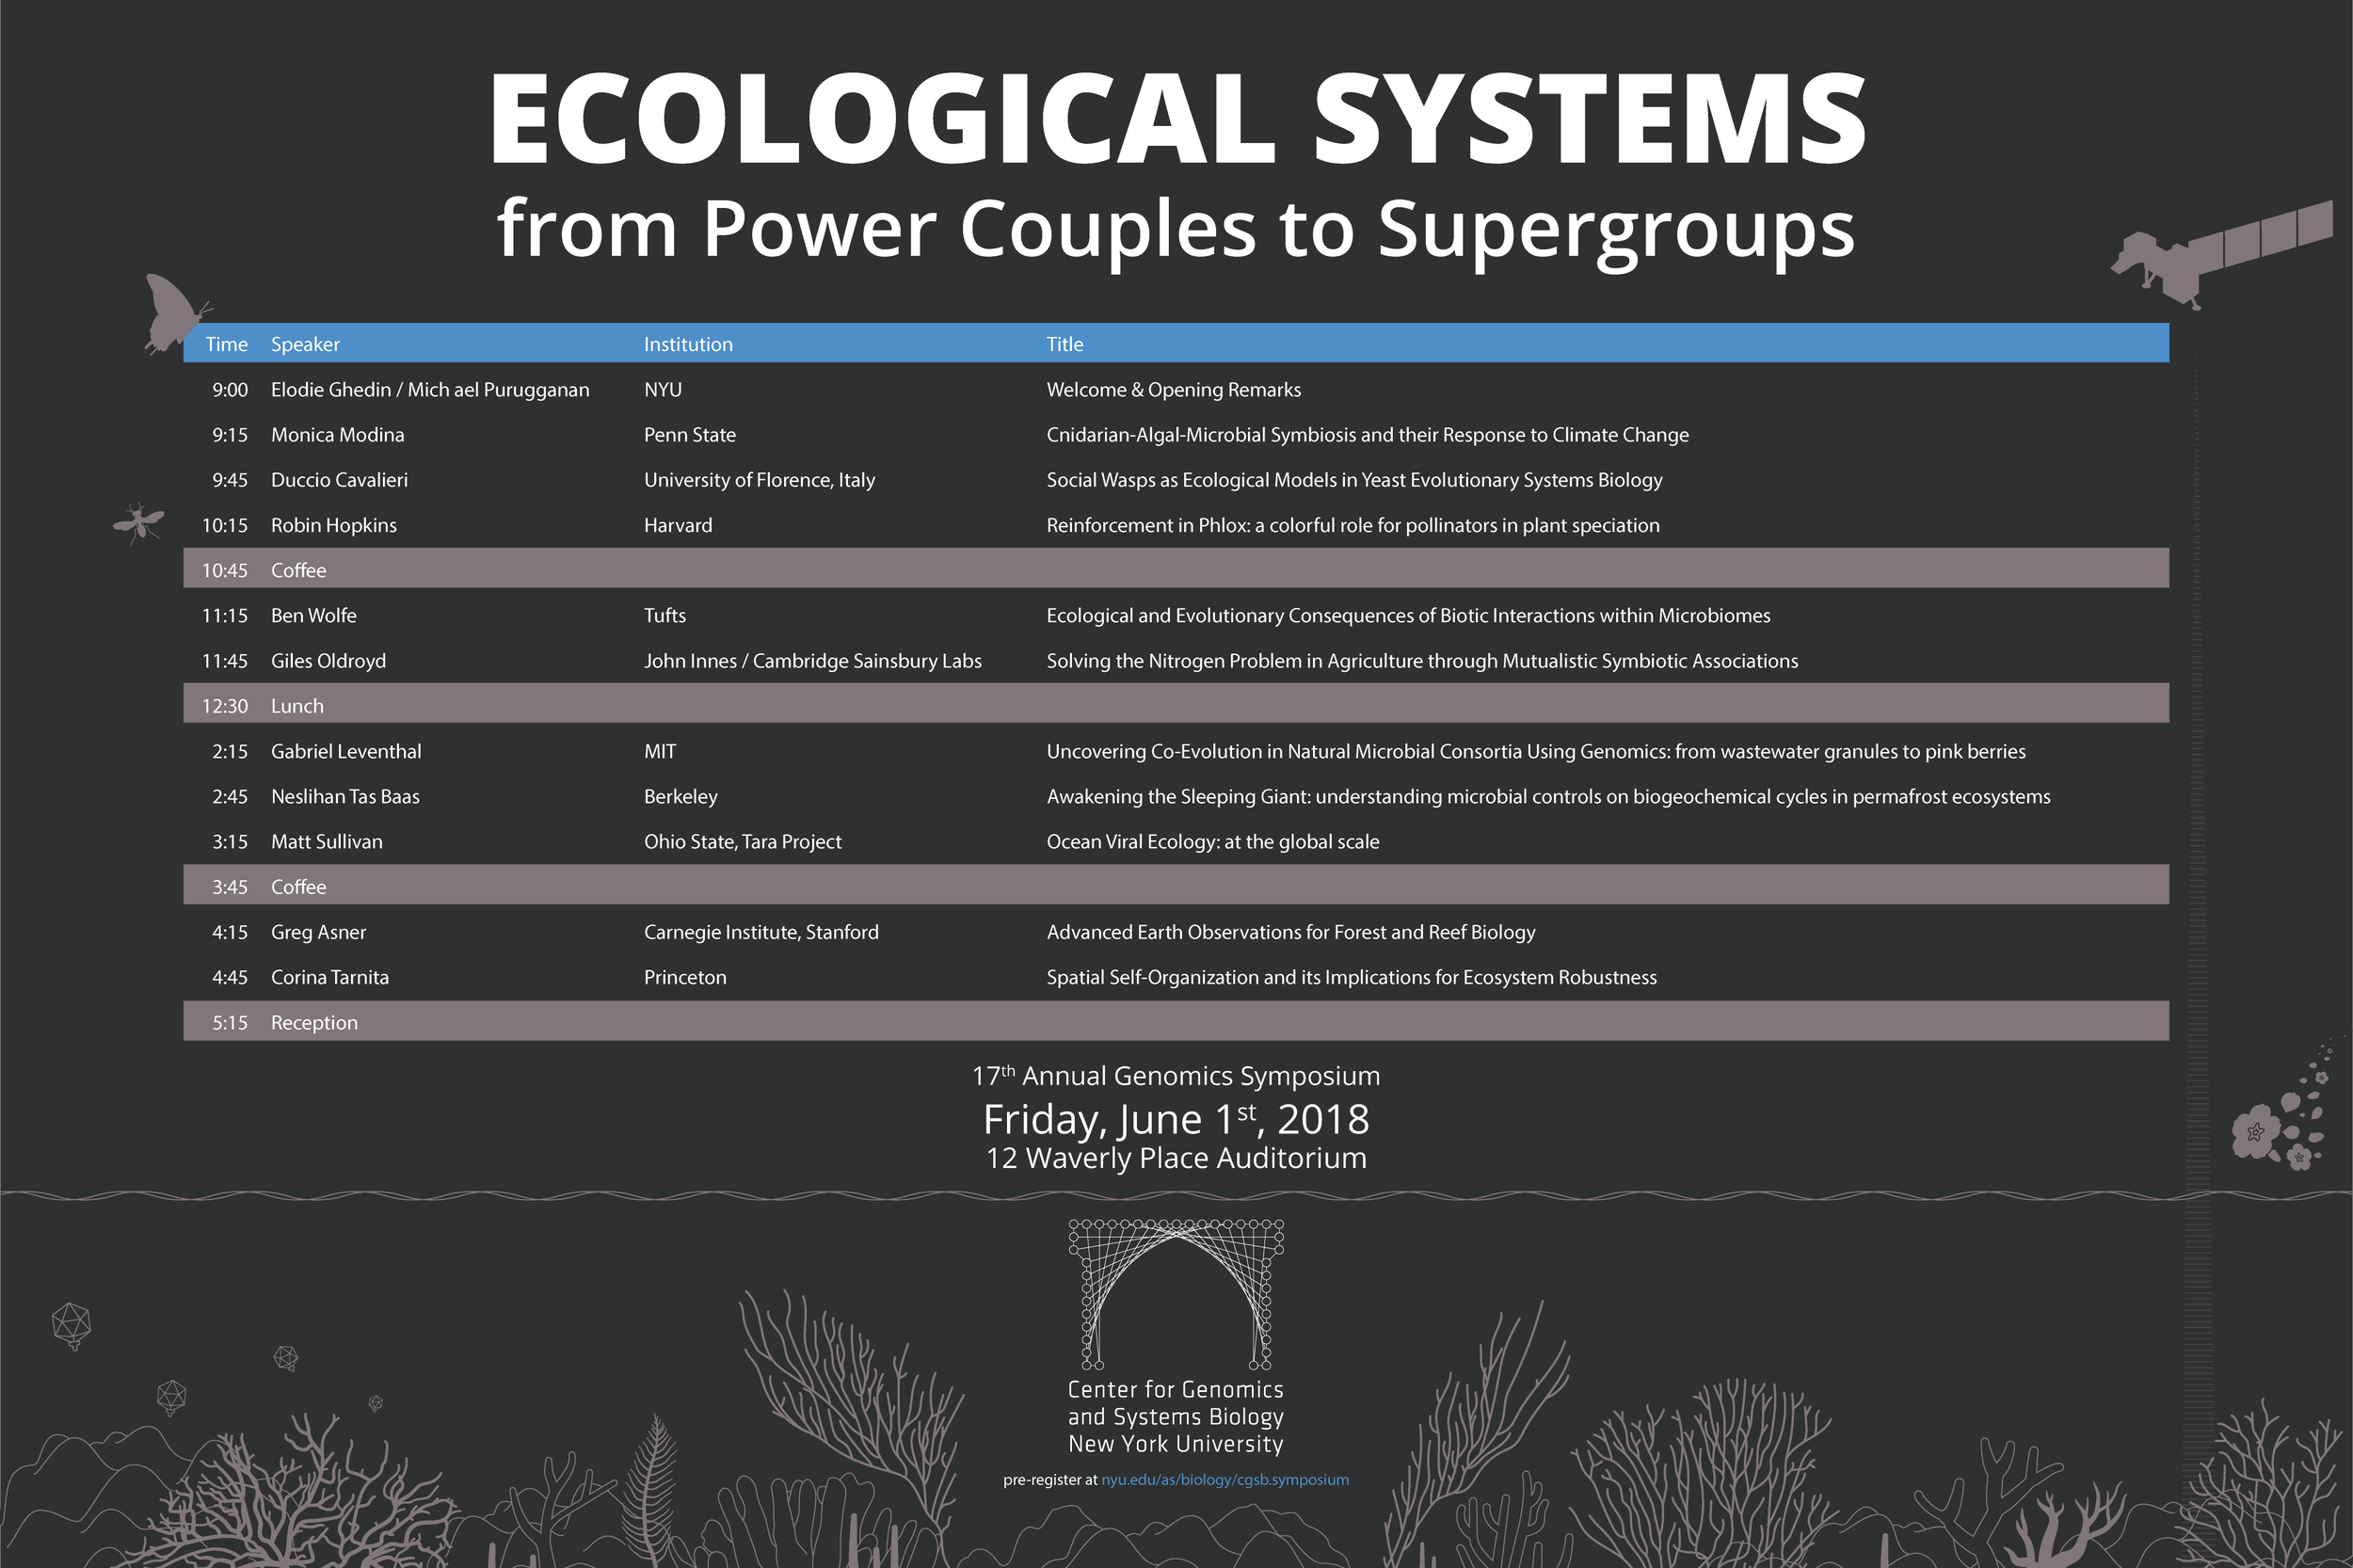 Ecological Systems (2018)